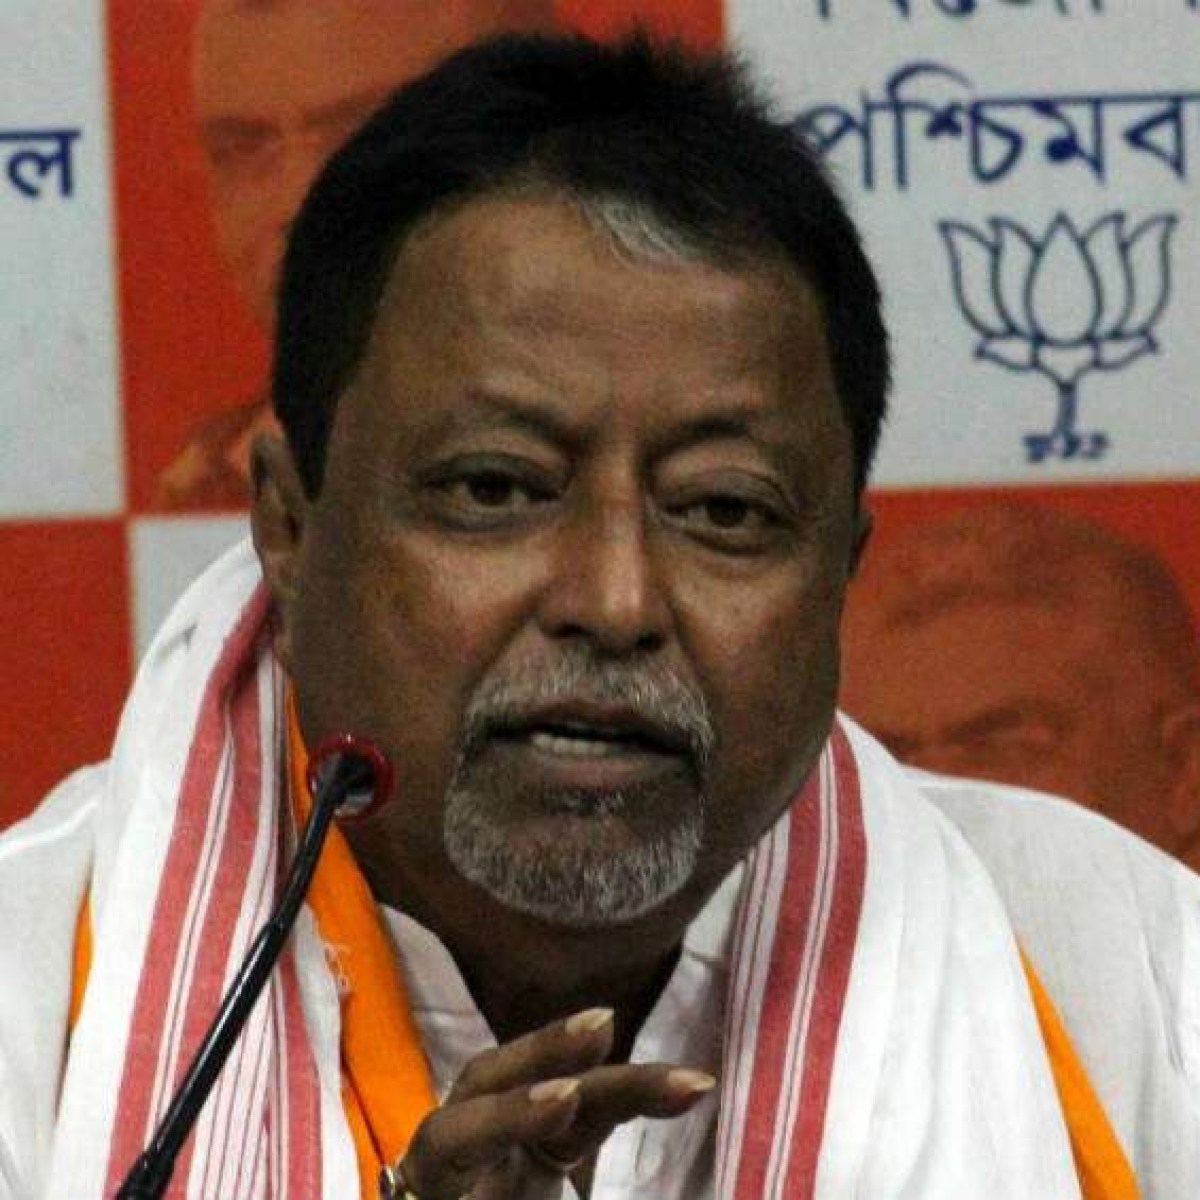 West Bengal: BJP readies letter demanding removal of TMC leader Mukul Roy's from MLA post